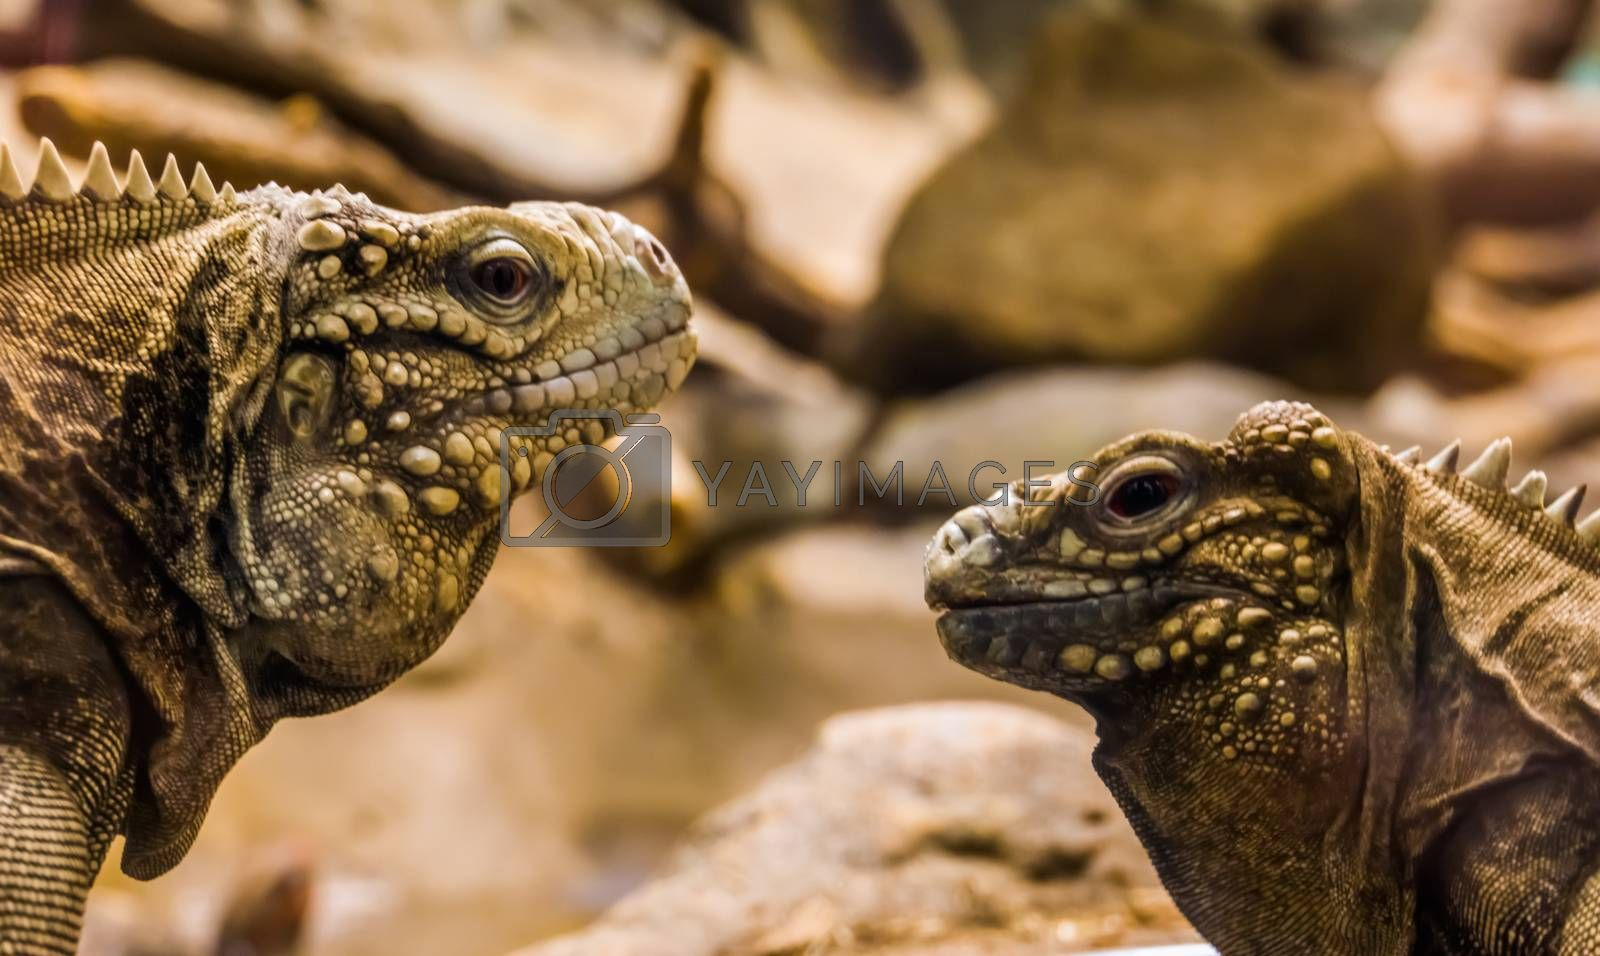 The faces of two cuban rock iguanas in closeup, tropical and vulnerable lizards from the coast of Cuba